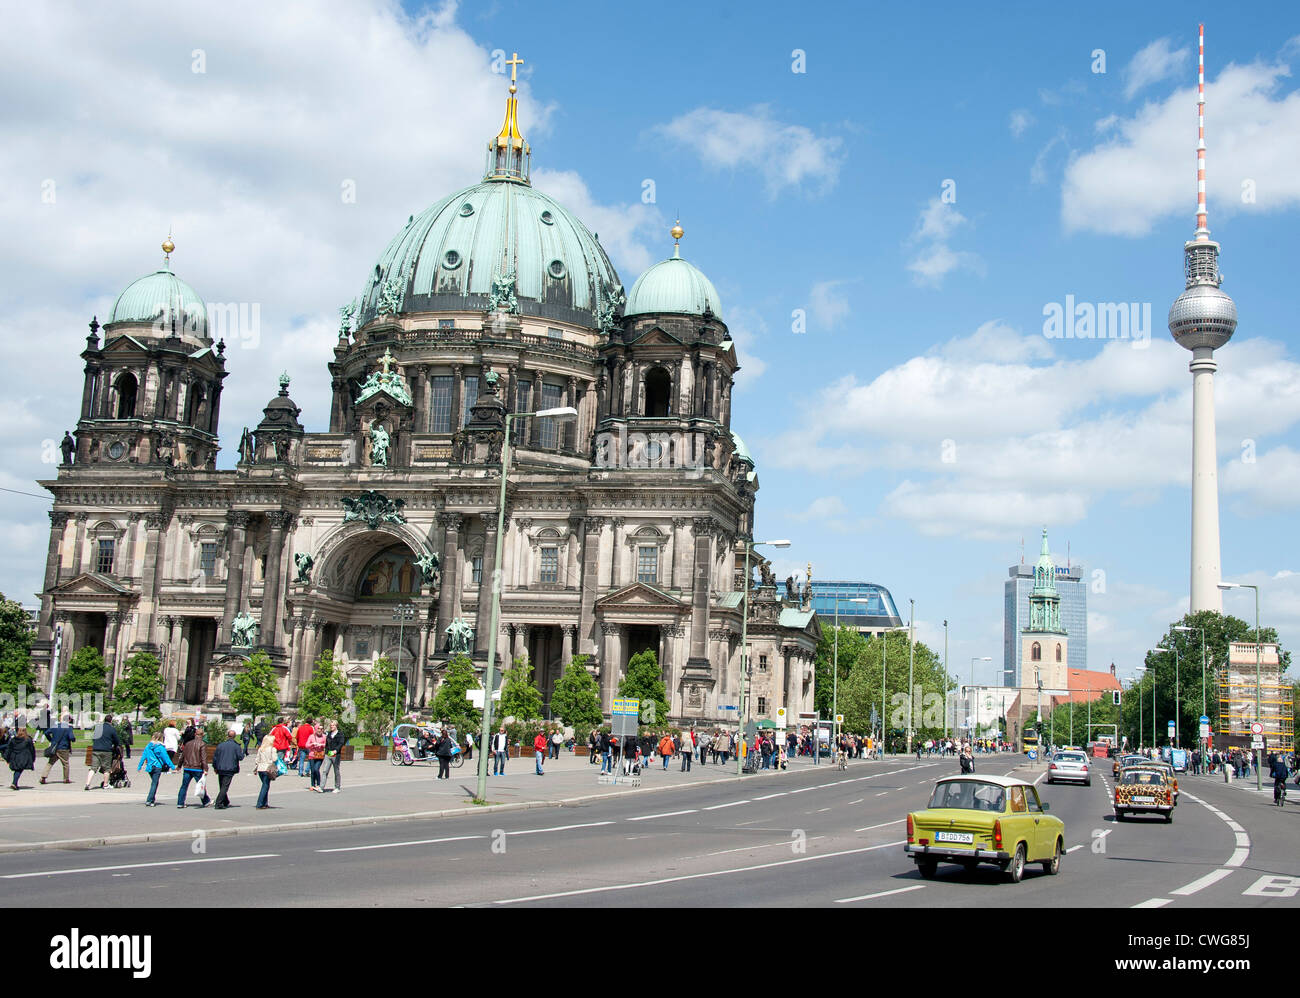 the berlin cathedral and space needle berlin germany stock photo 50144798 alamy. Black Bedroom Furniture Sets. Home Design Ideas